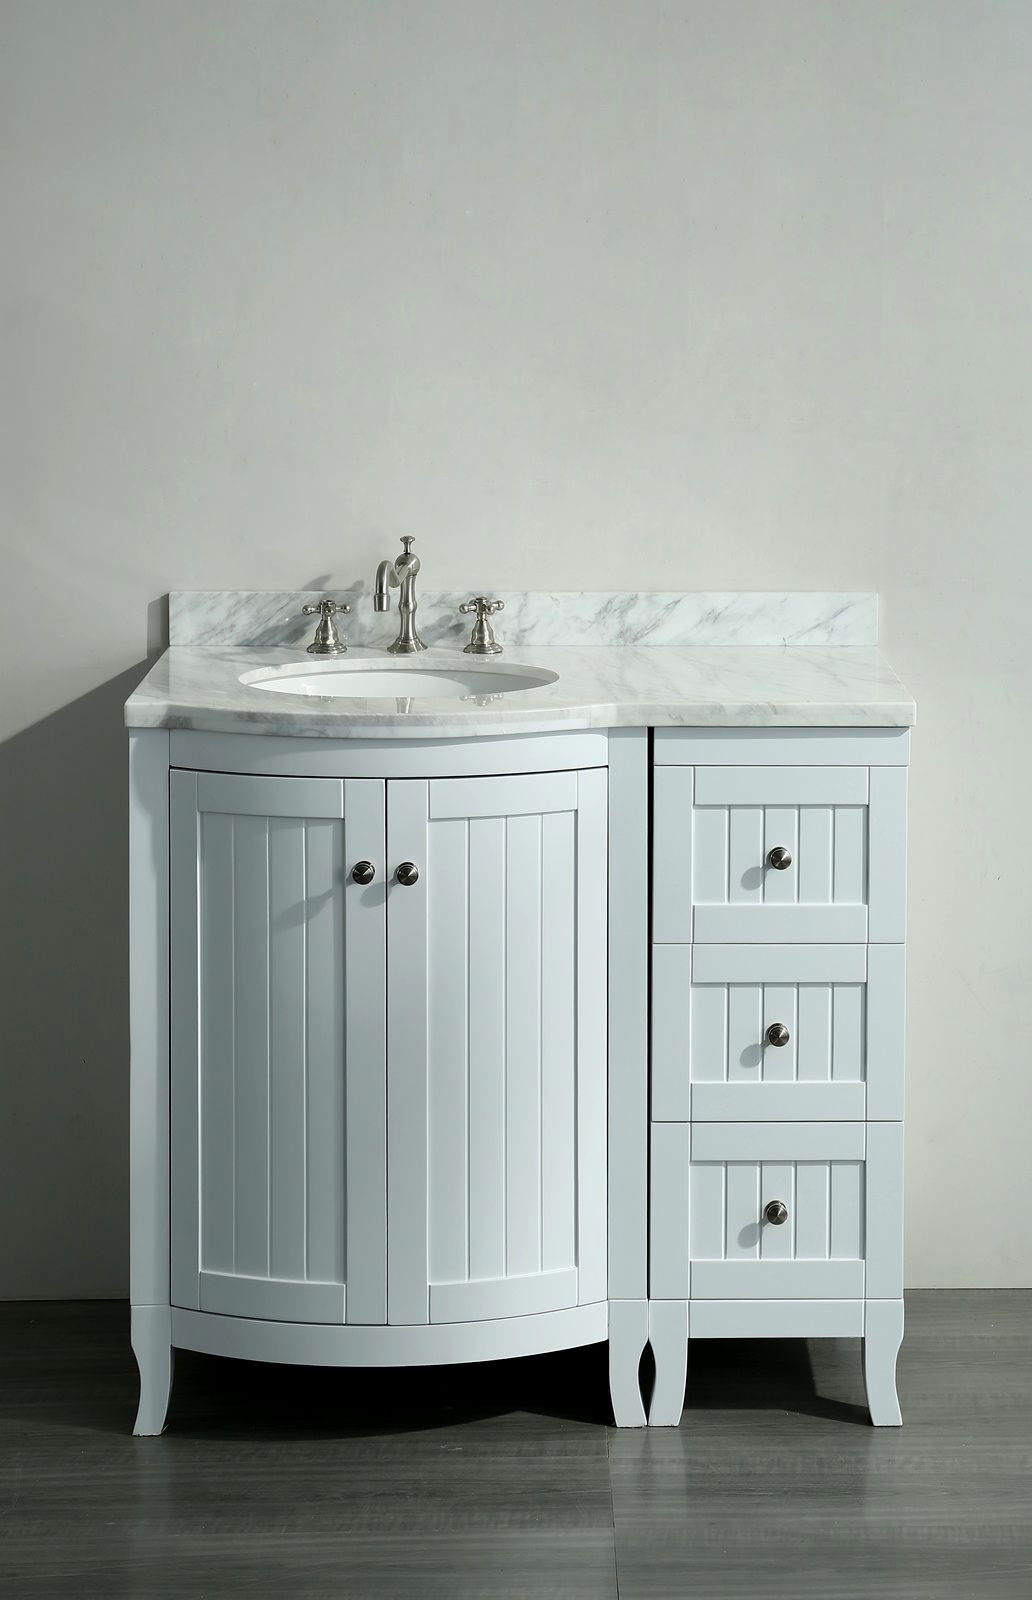 Finest 36 Bathroom Vanity without top Portrait - Home ...